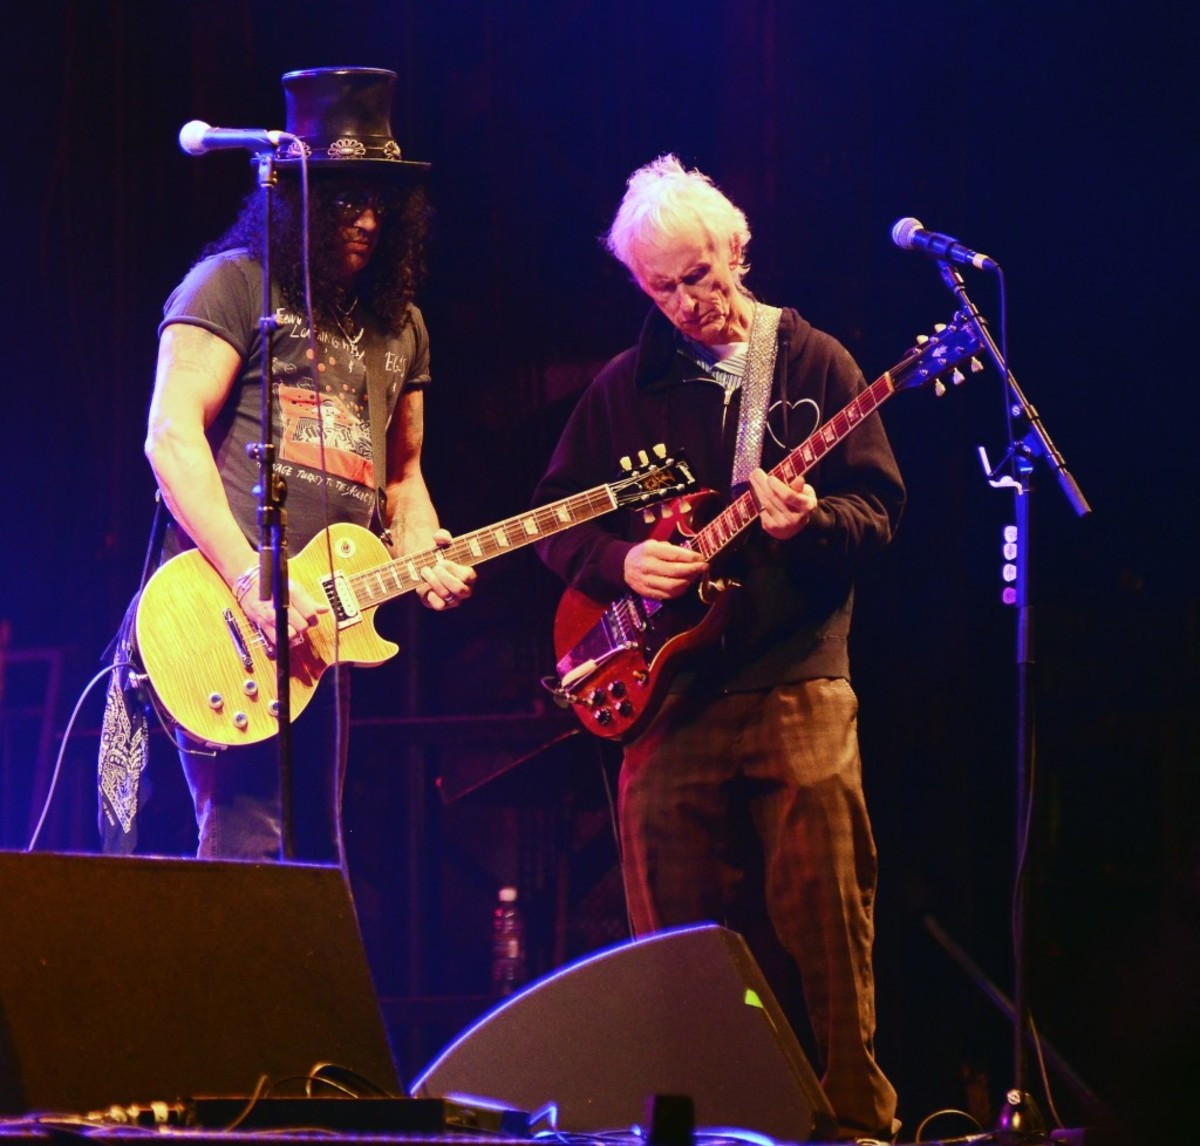 Slash (left) and Robby Krieger trade licks during the Jimi Hendrix concert tribute. (Photo by Chris M. Junior)